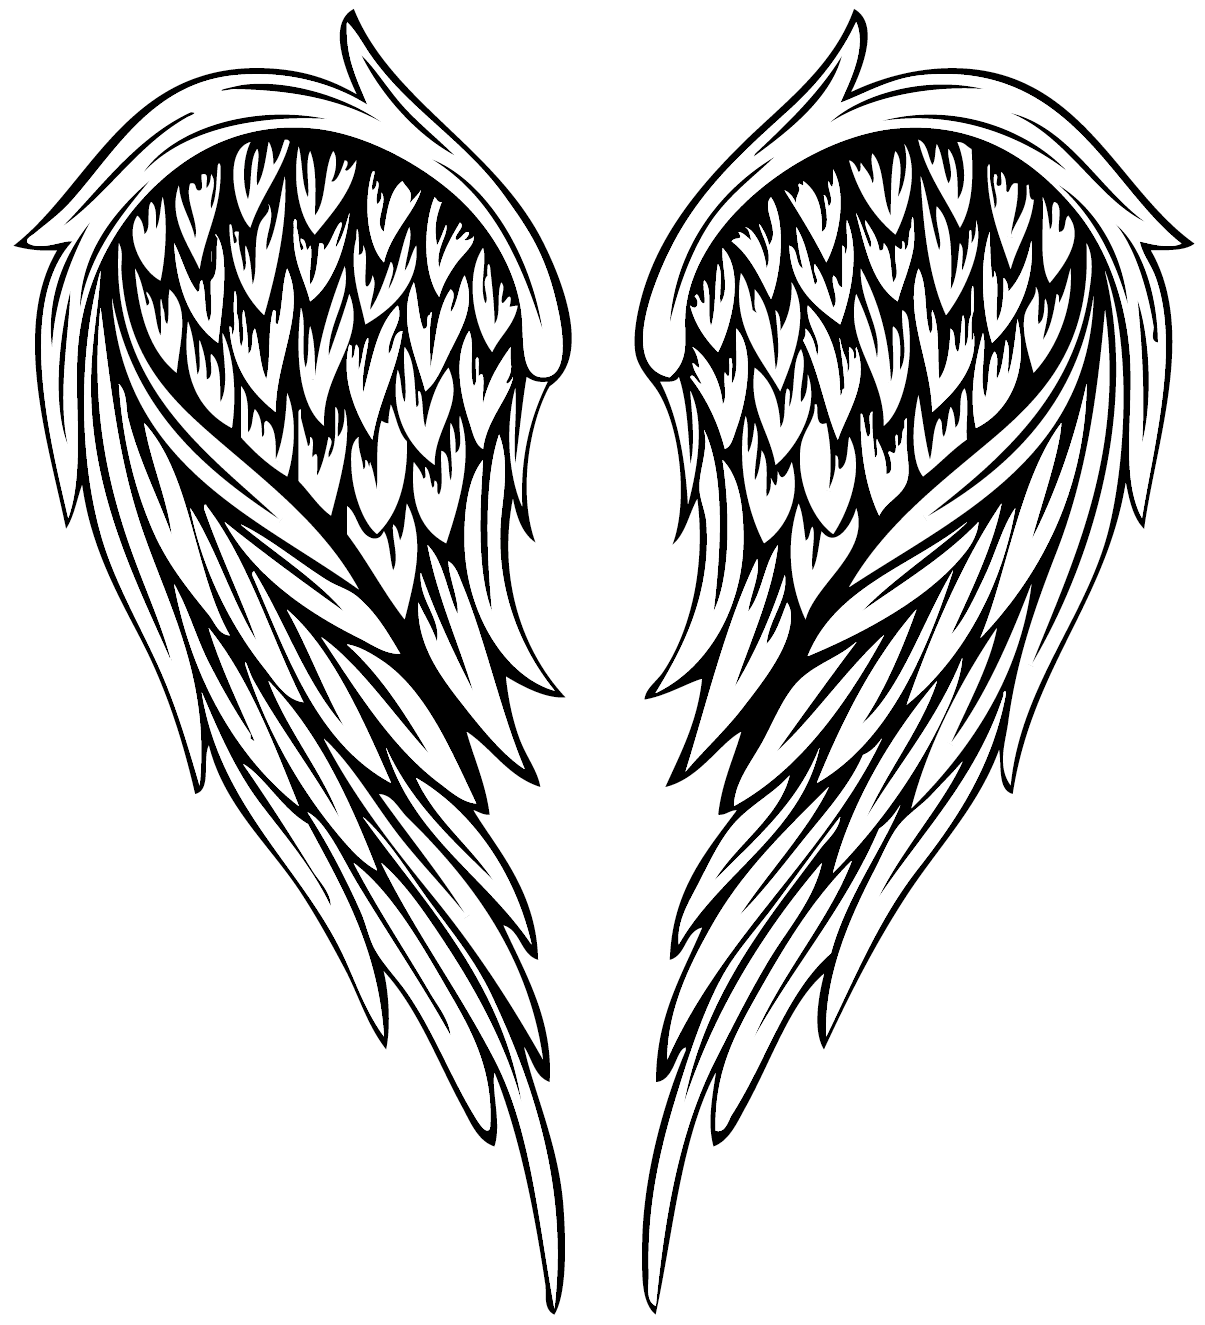 Angel wings vector png. Drawing illustration painted feather